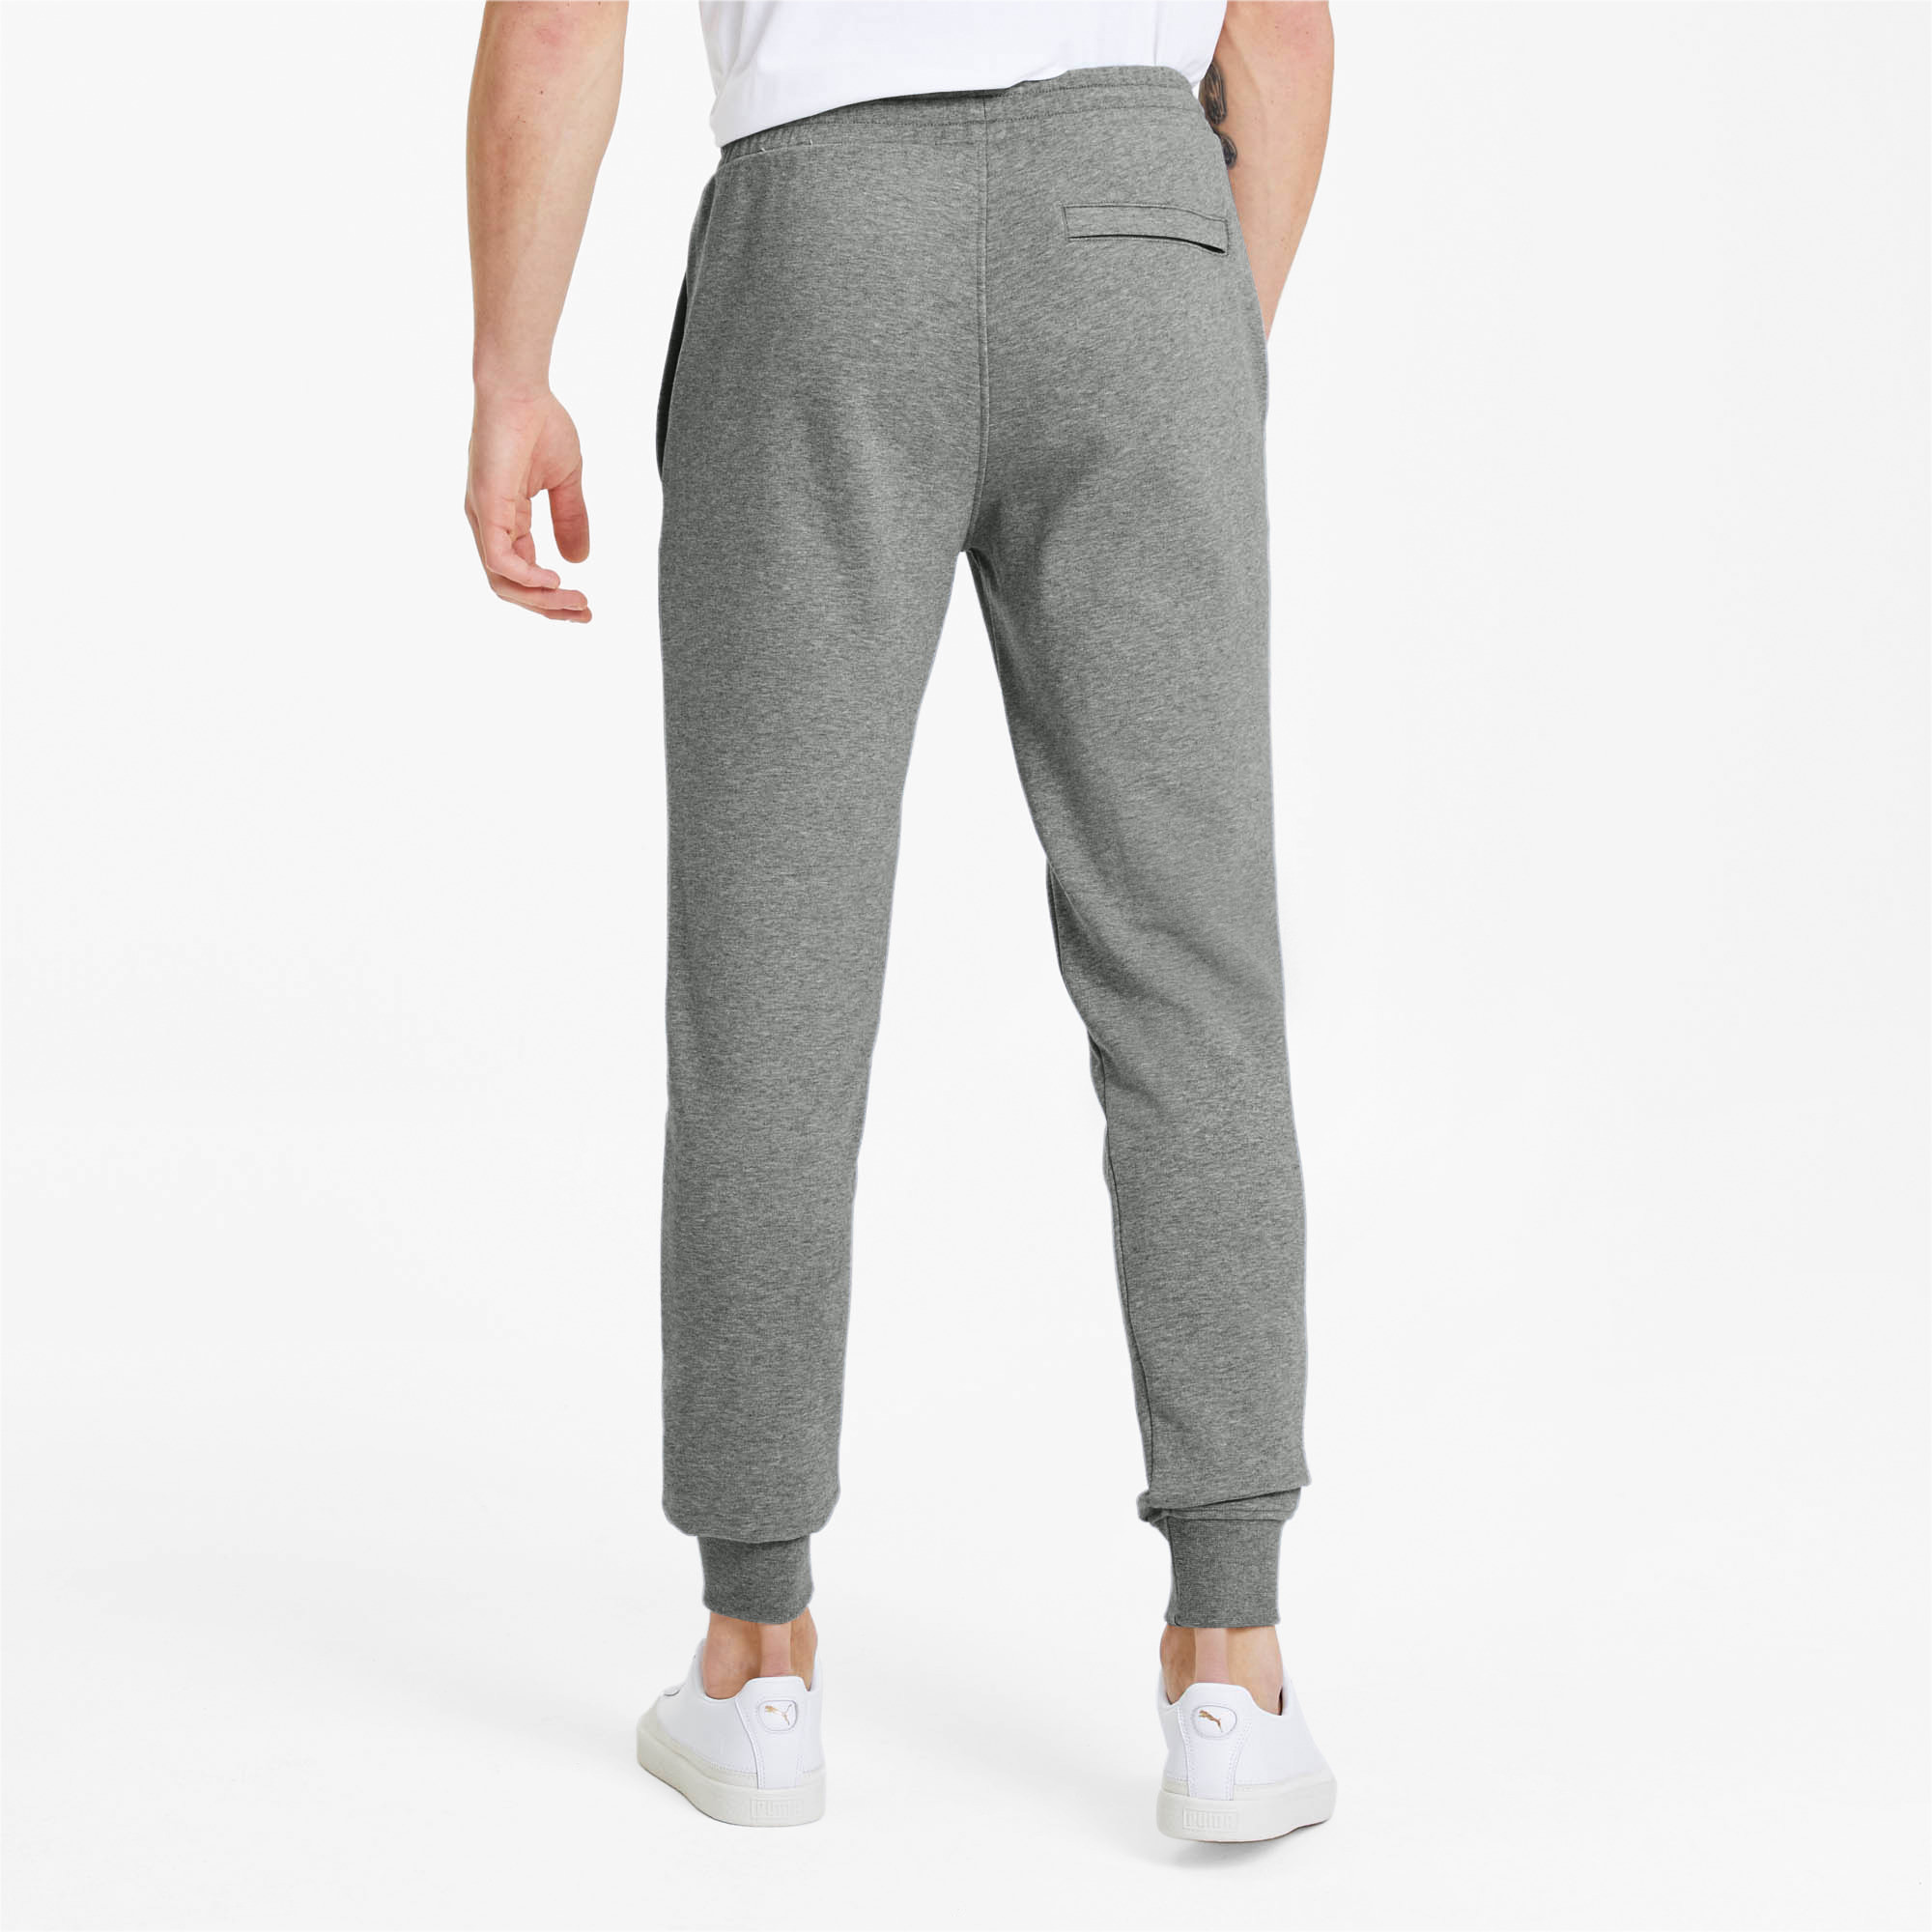 PUMA-Classics-Men-039-s-Cuffed-Sweatpants-Men-Knitted-Pants-Sport-Classics thumbnail 10